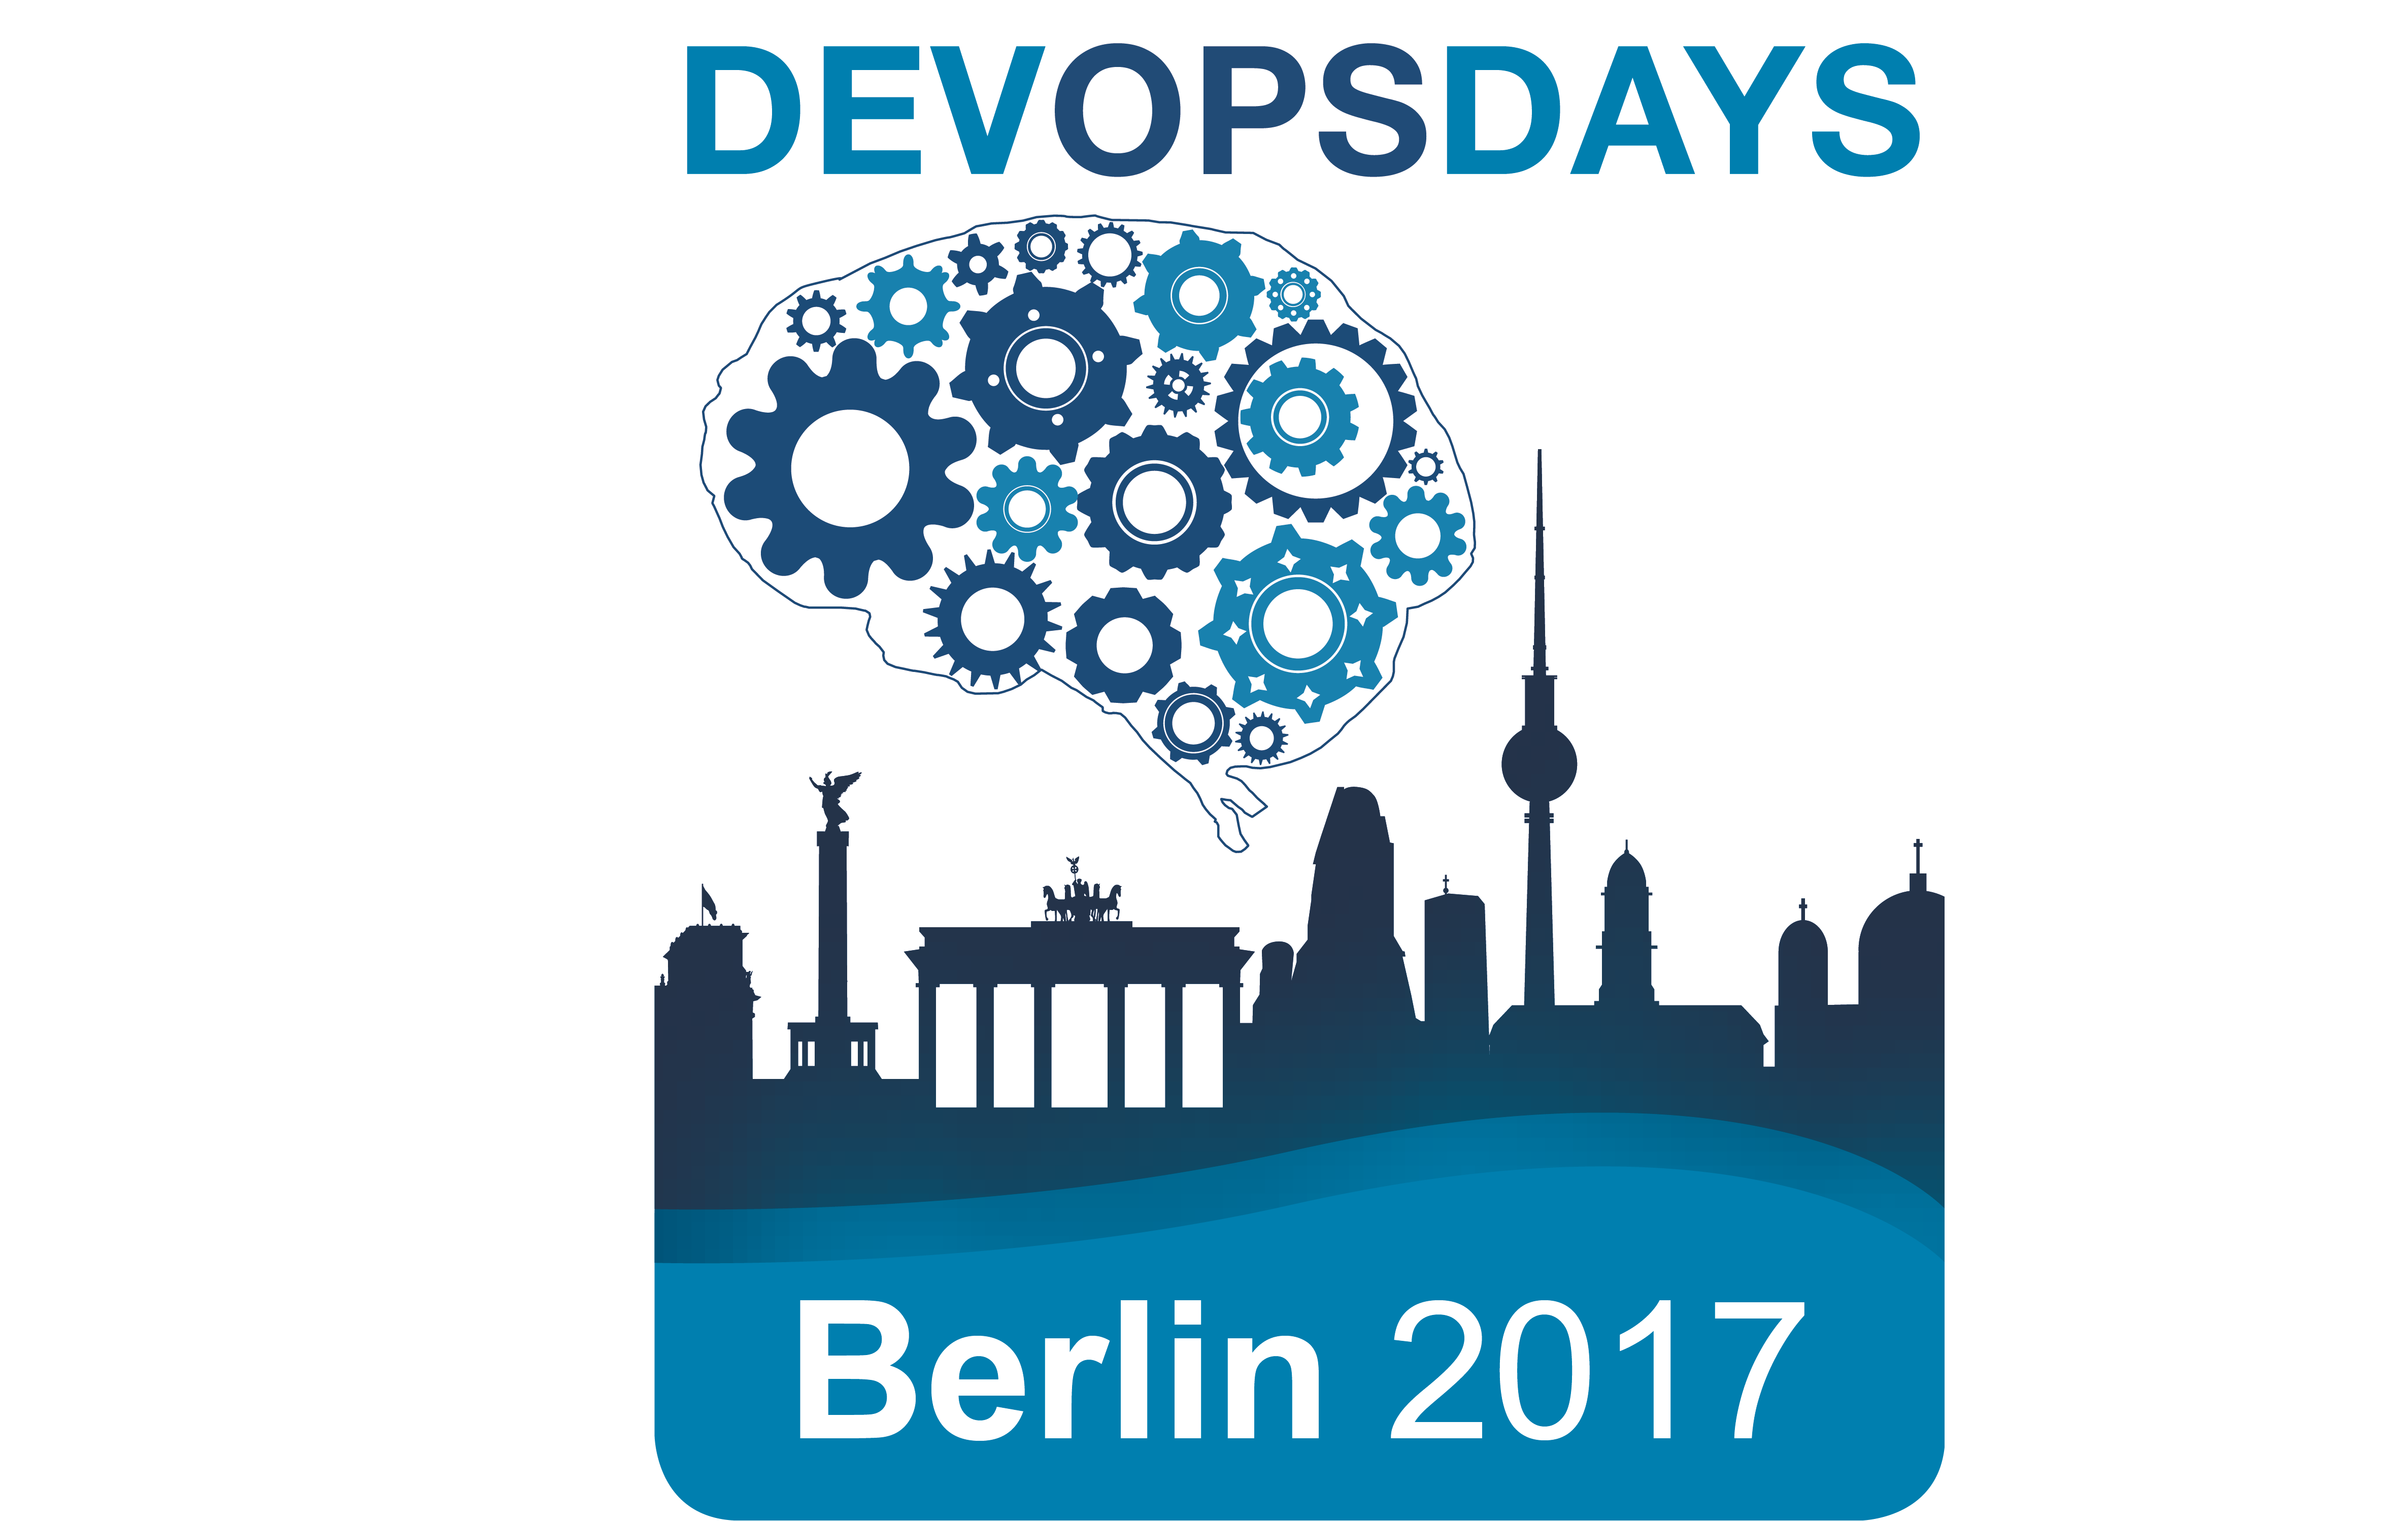 devopsdays Berlin 2017